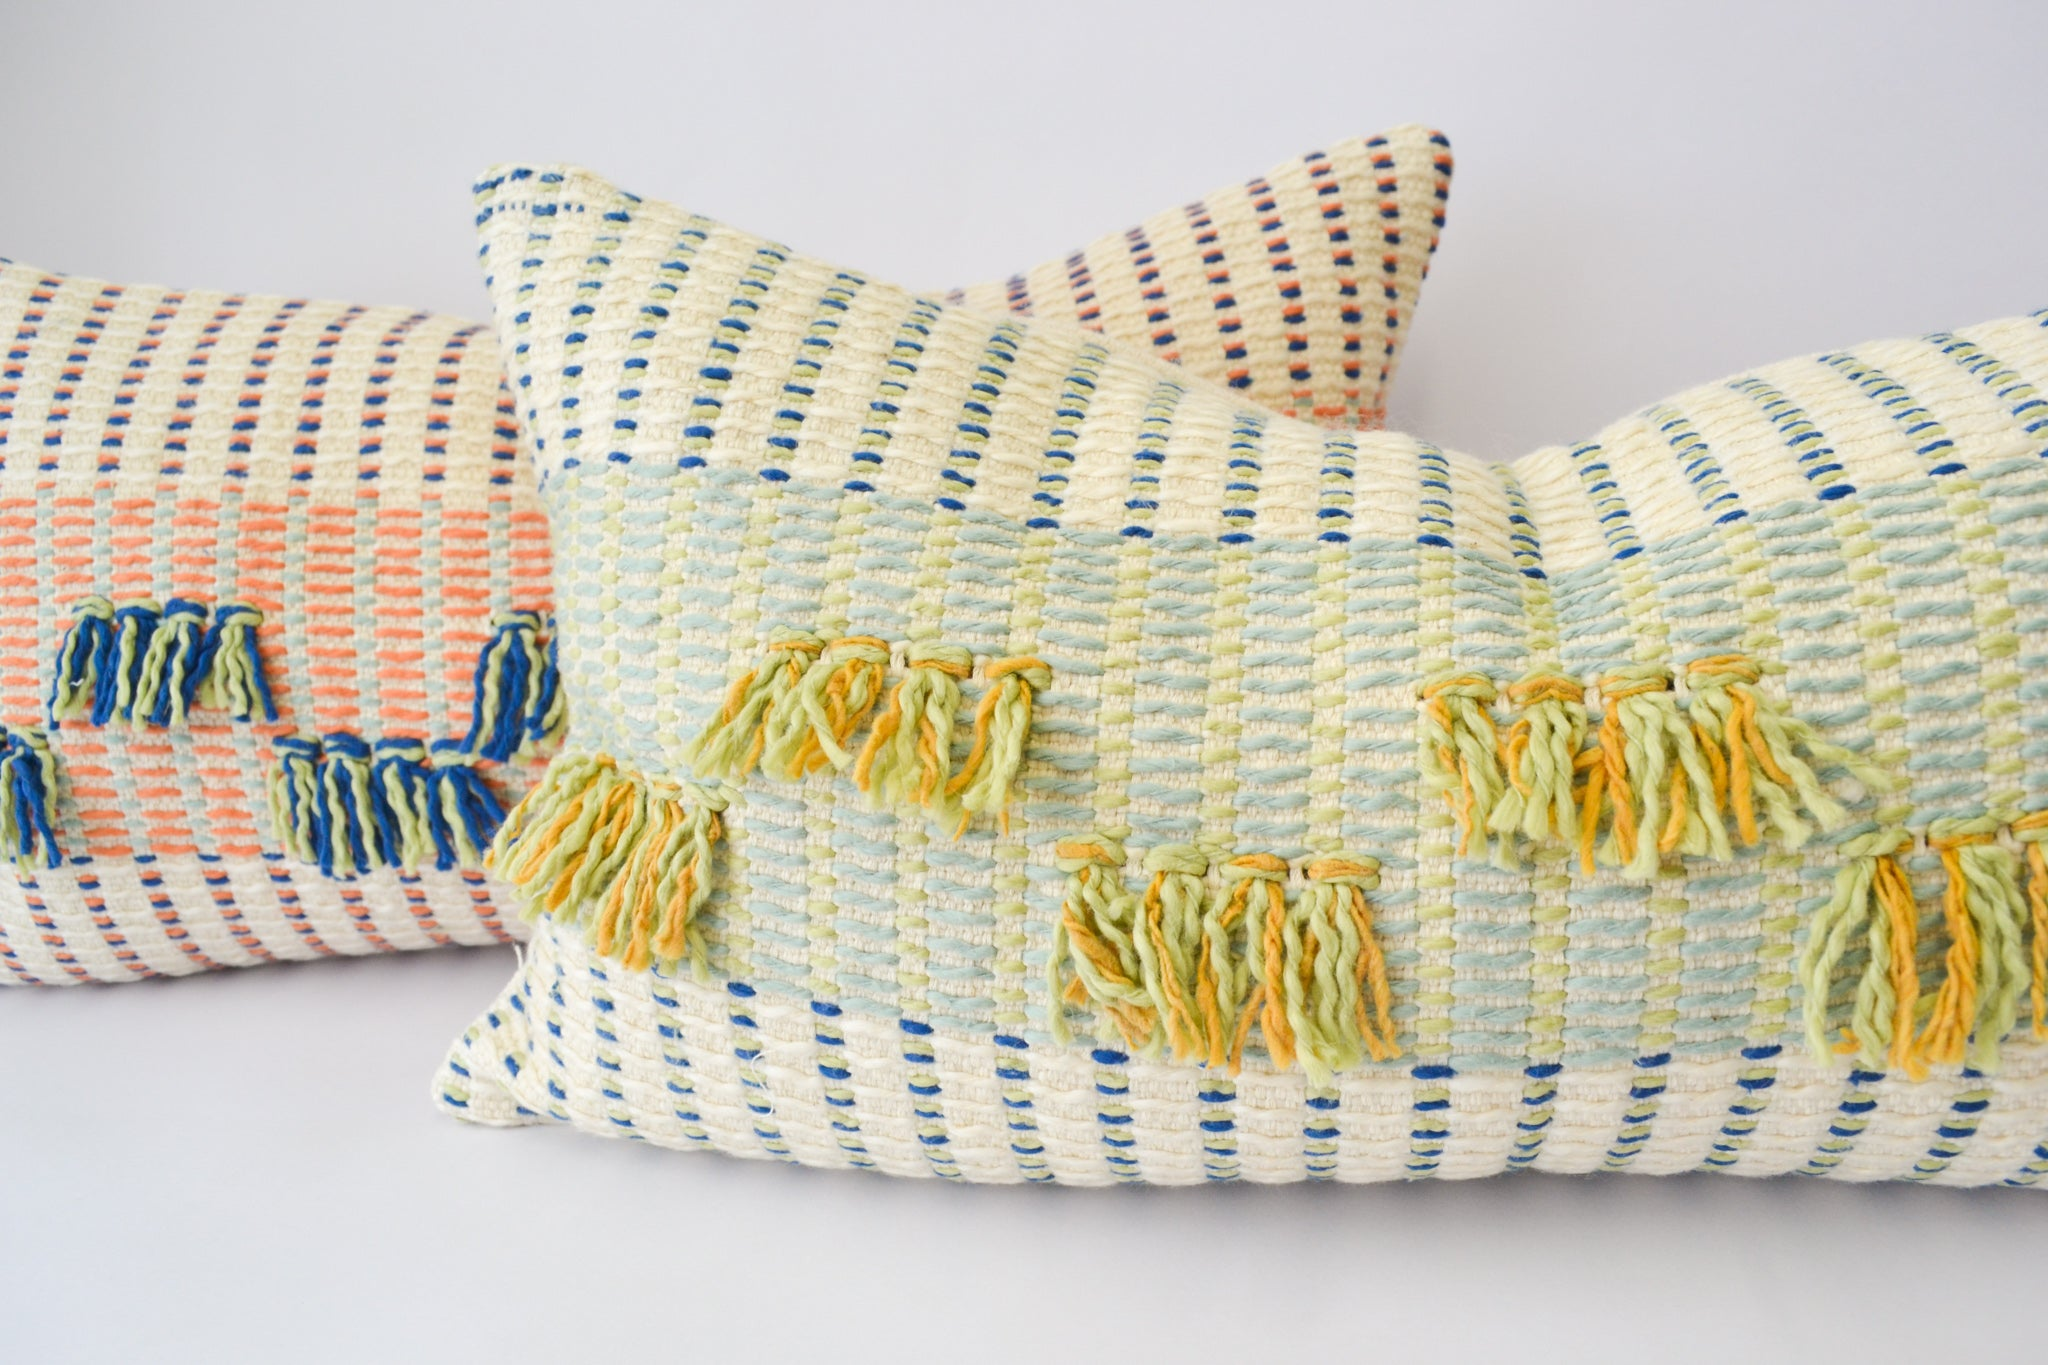 Handwoven organic cotton pillows